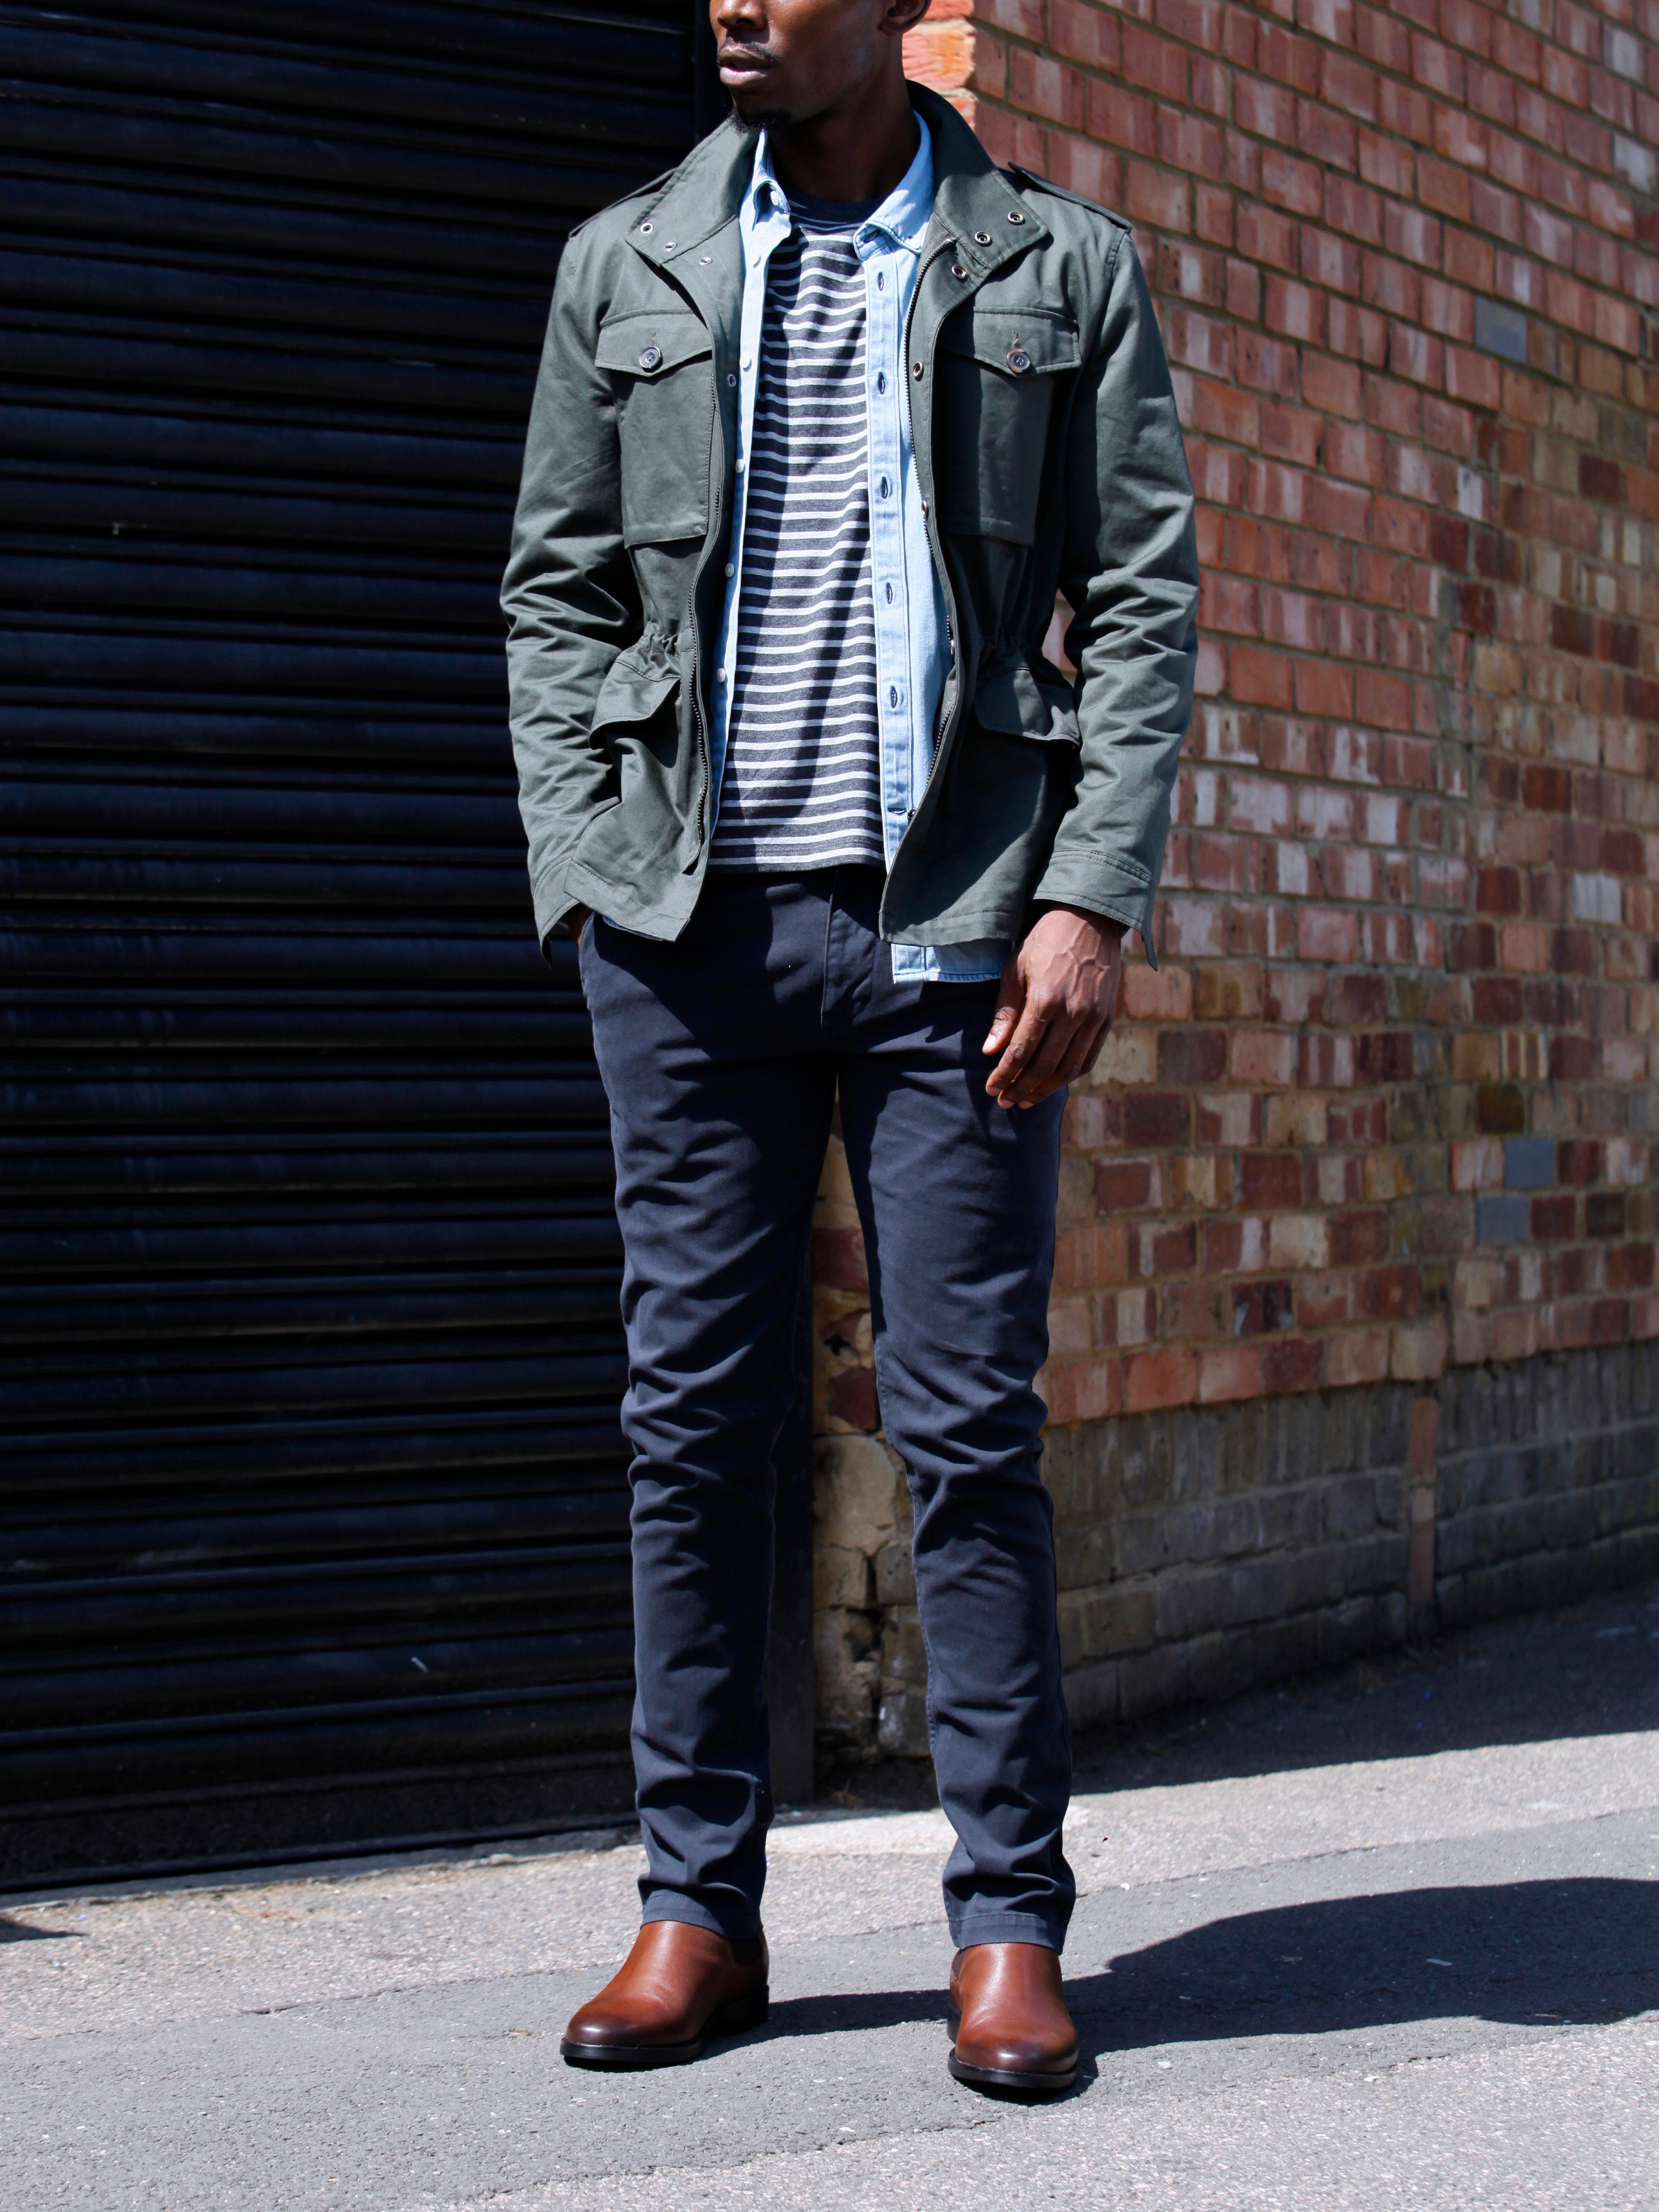 Men's outfit idea for 2021 with field jacket, denim shirt, striped crew neck t-shirt, navy chinos, brown chelsea boots. Suitable for spring and fall.